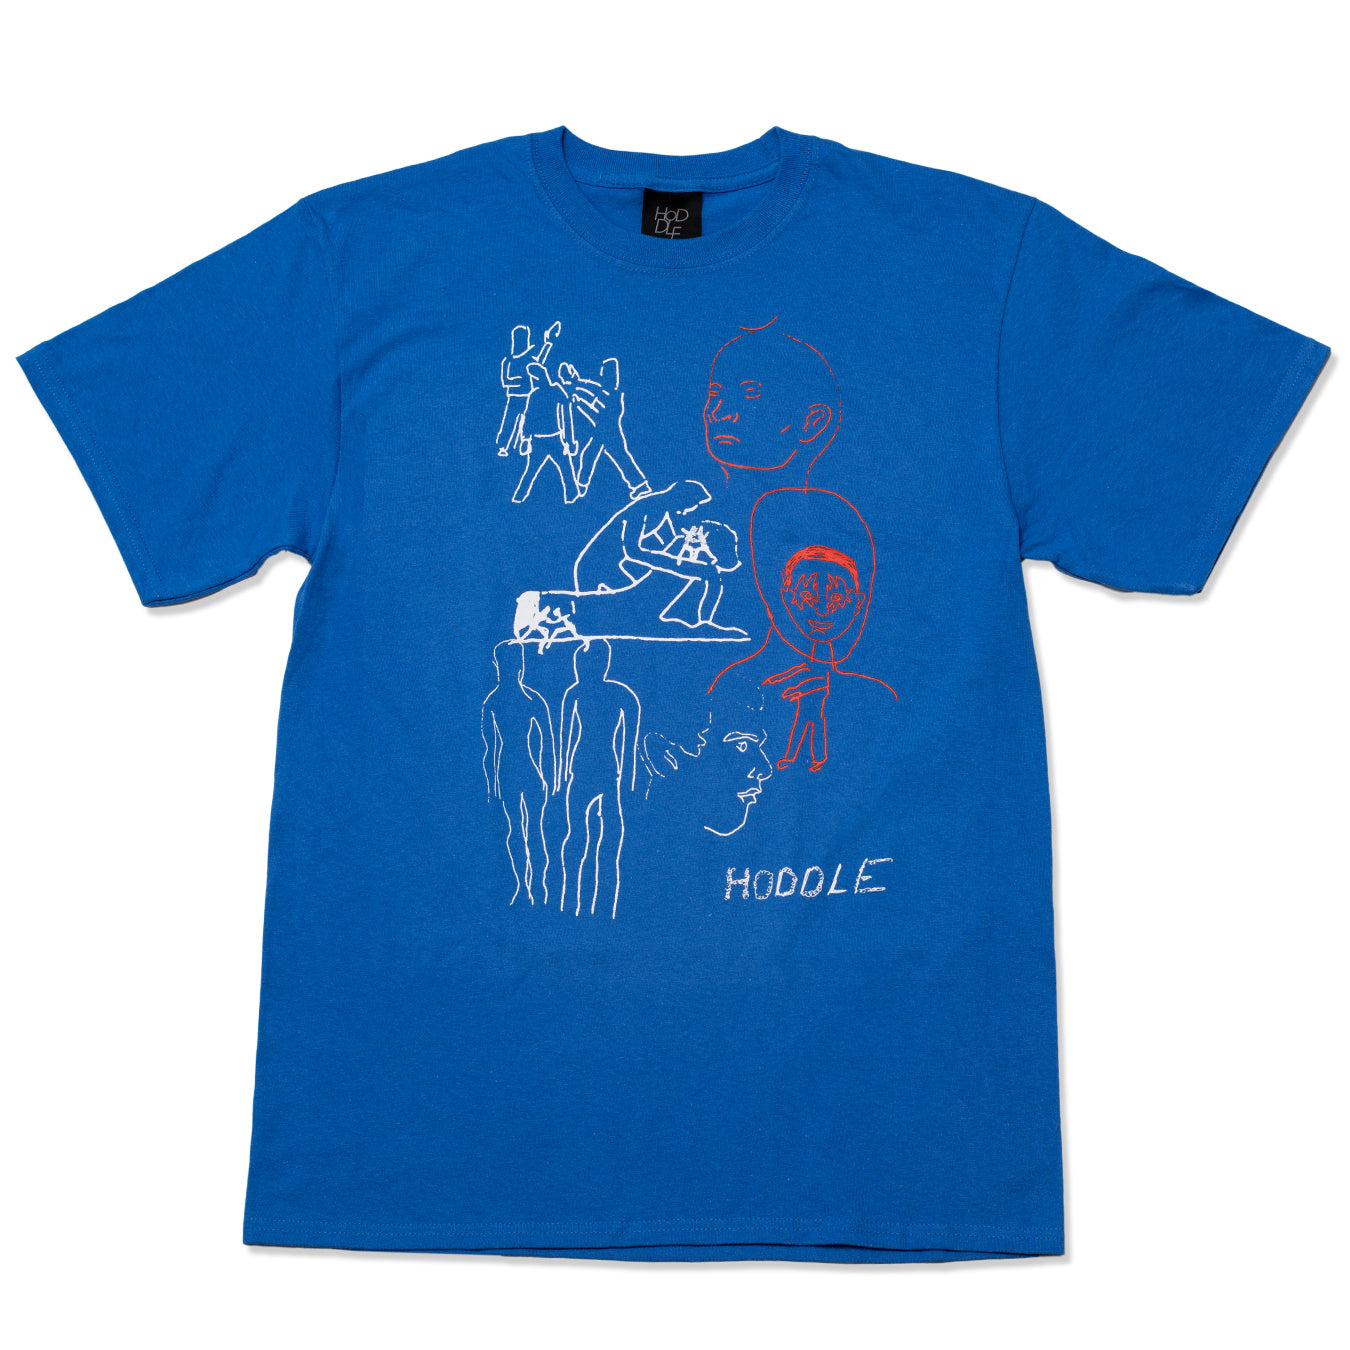 CONVERSATION TEE ROYAL BLUE